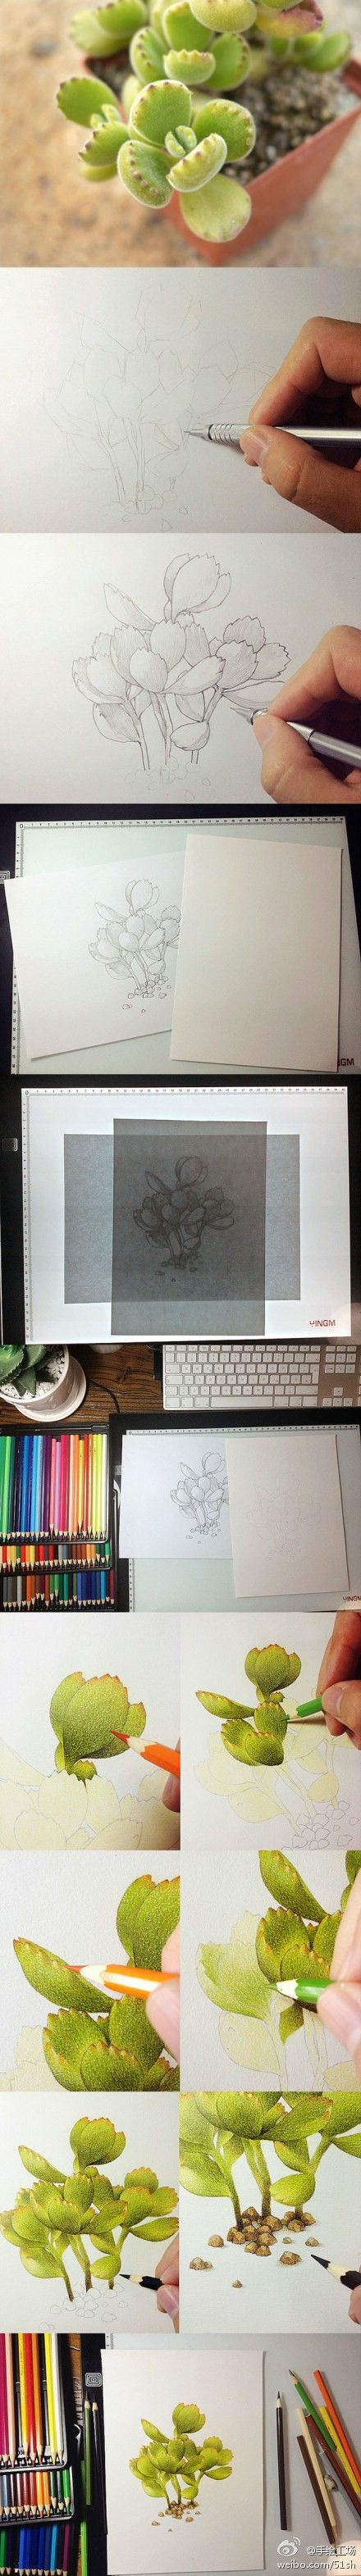 Step by step colored pencil drawing of a plant.